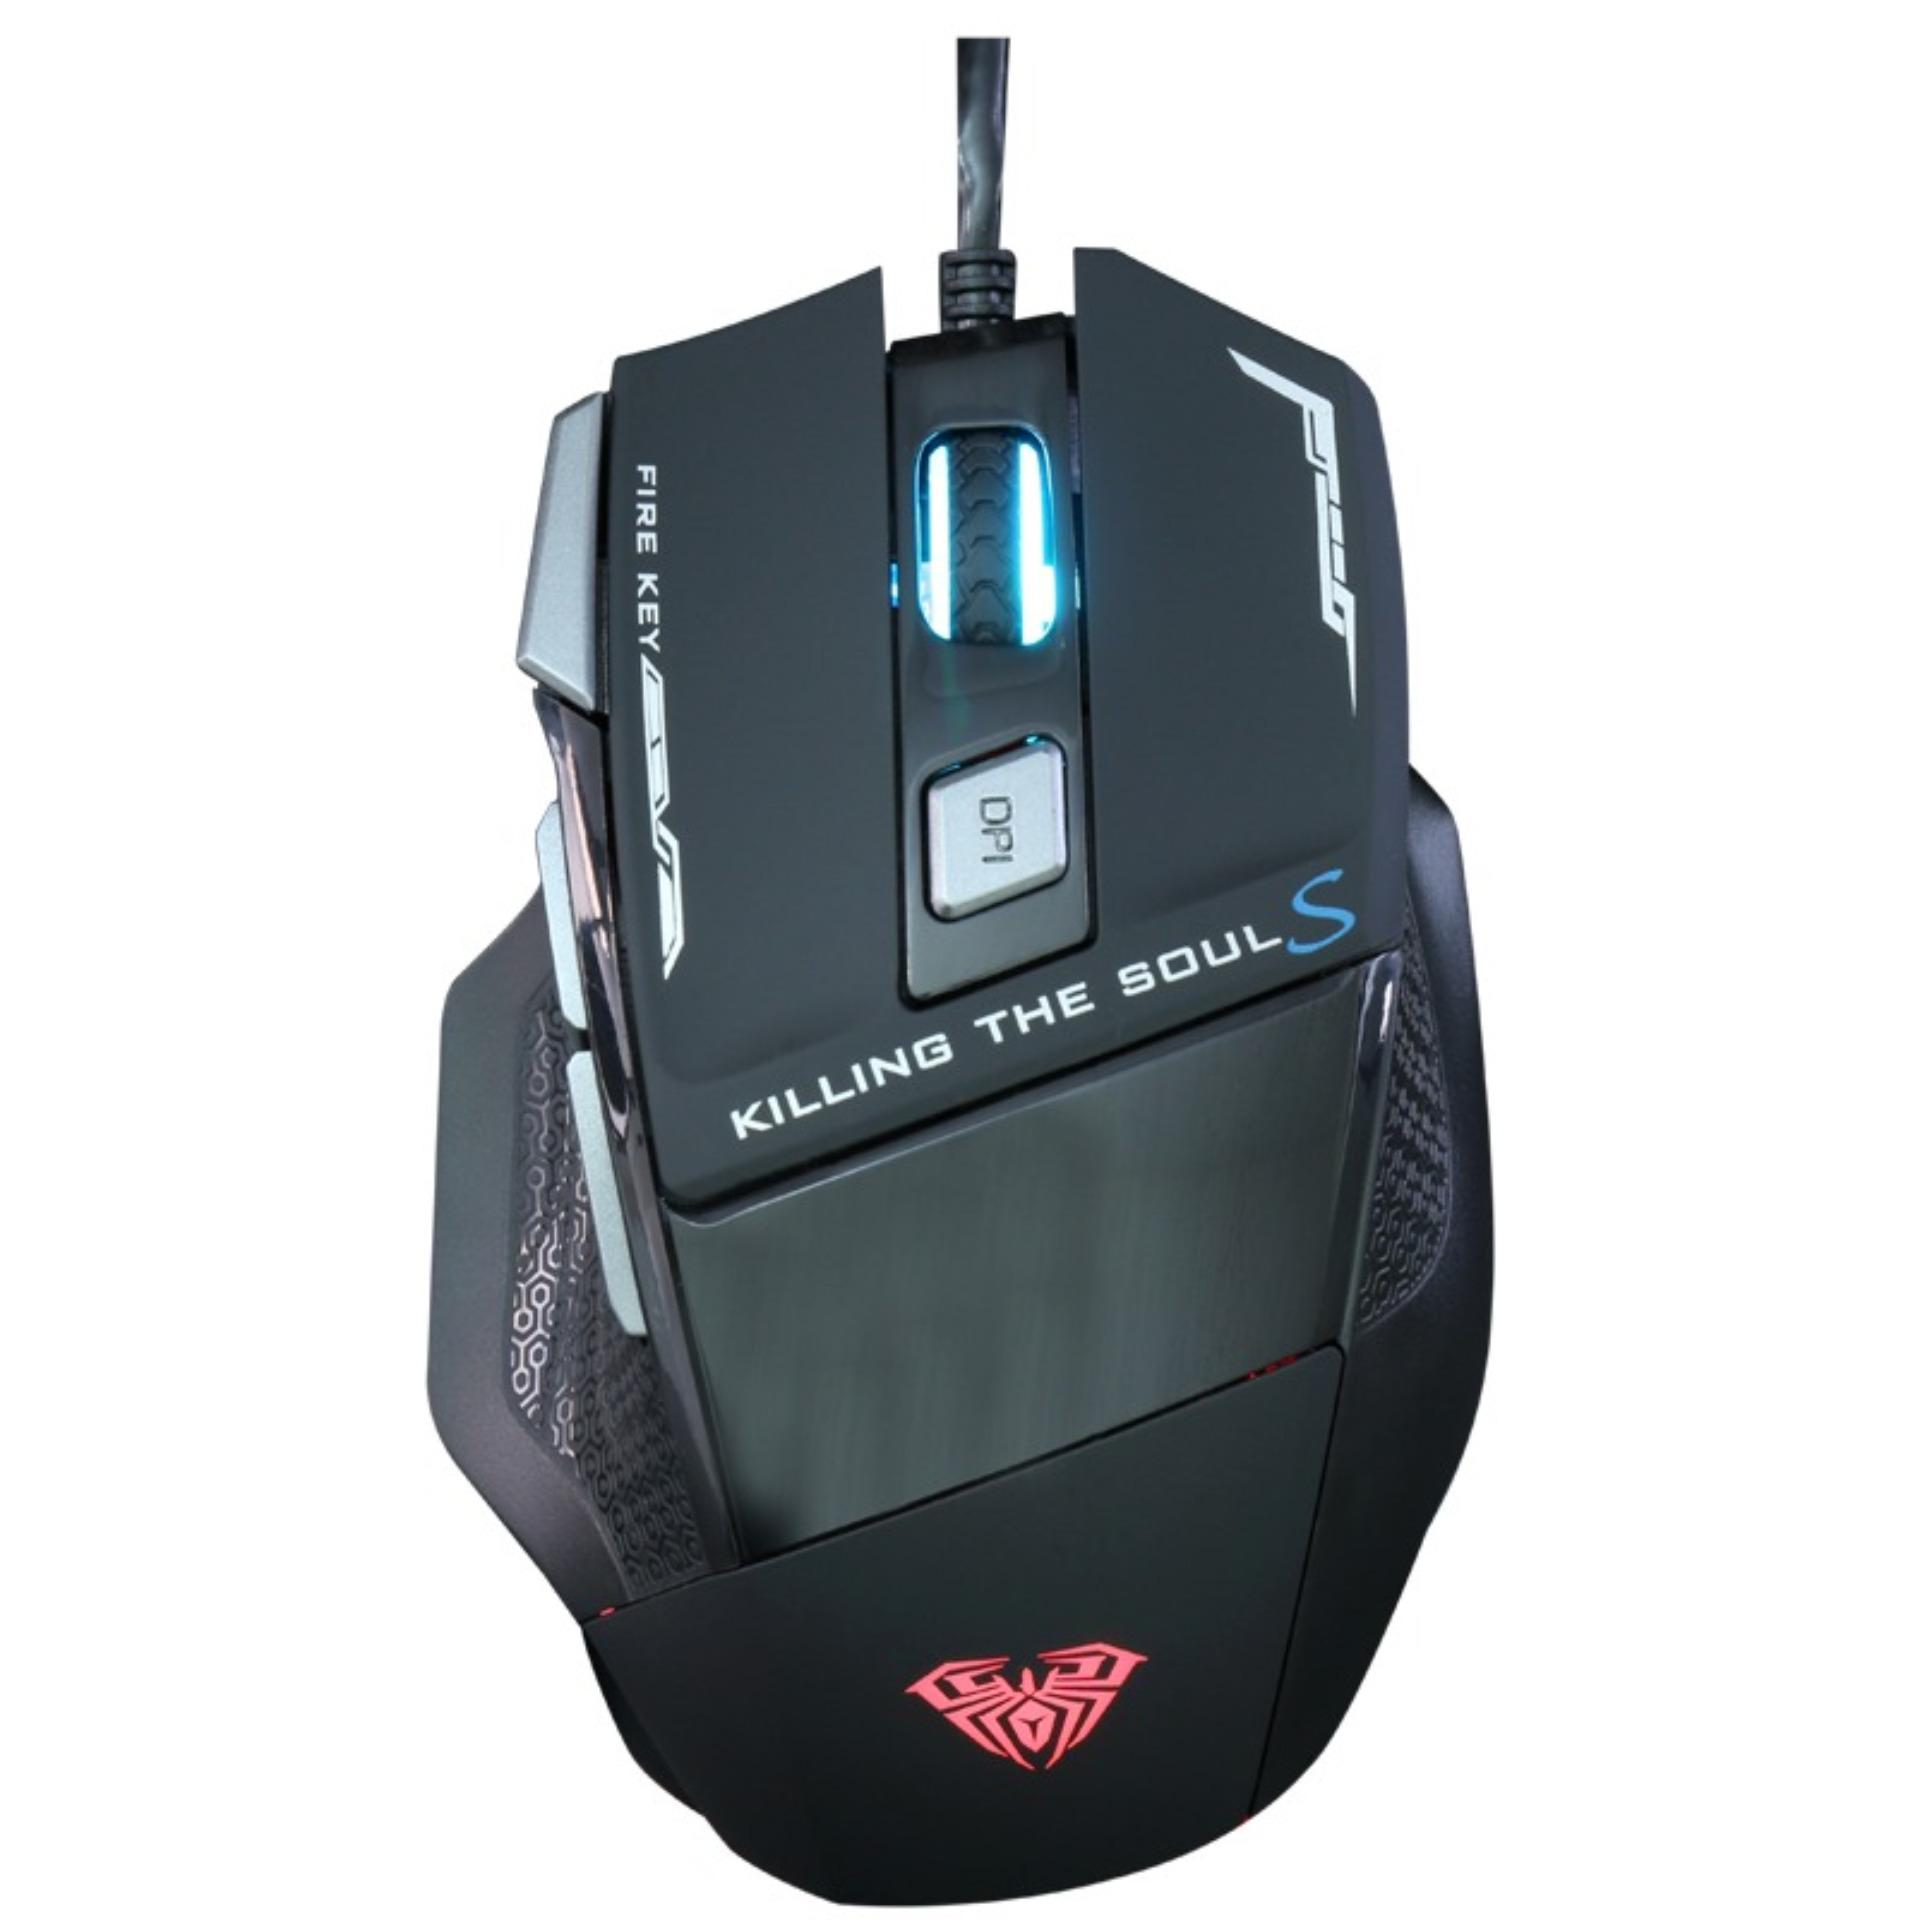 AULA Killing The Soul II RGB Gaming Mouse Hitam